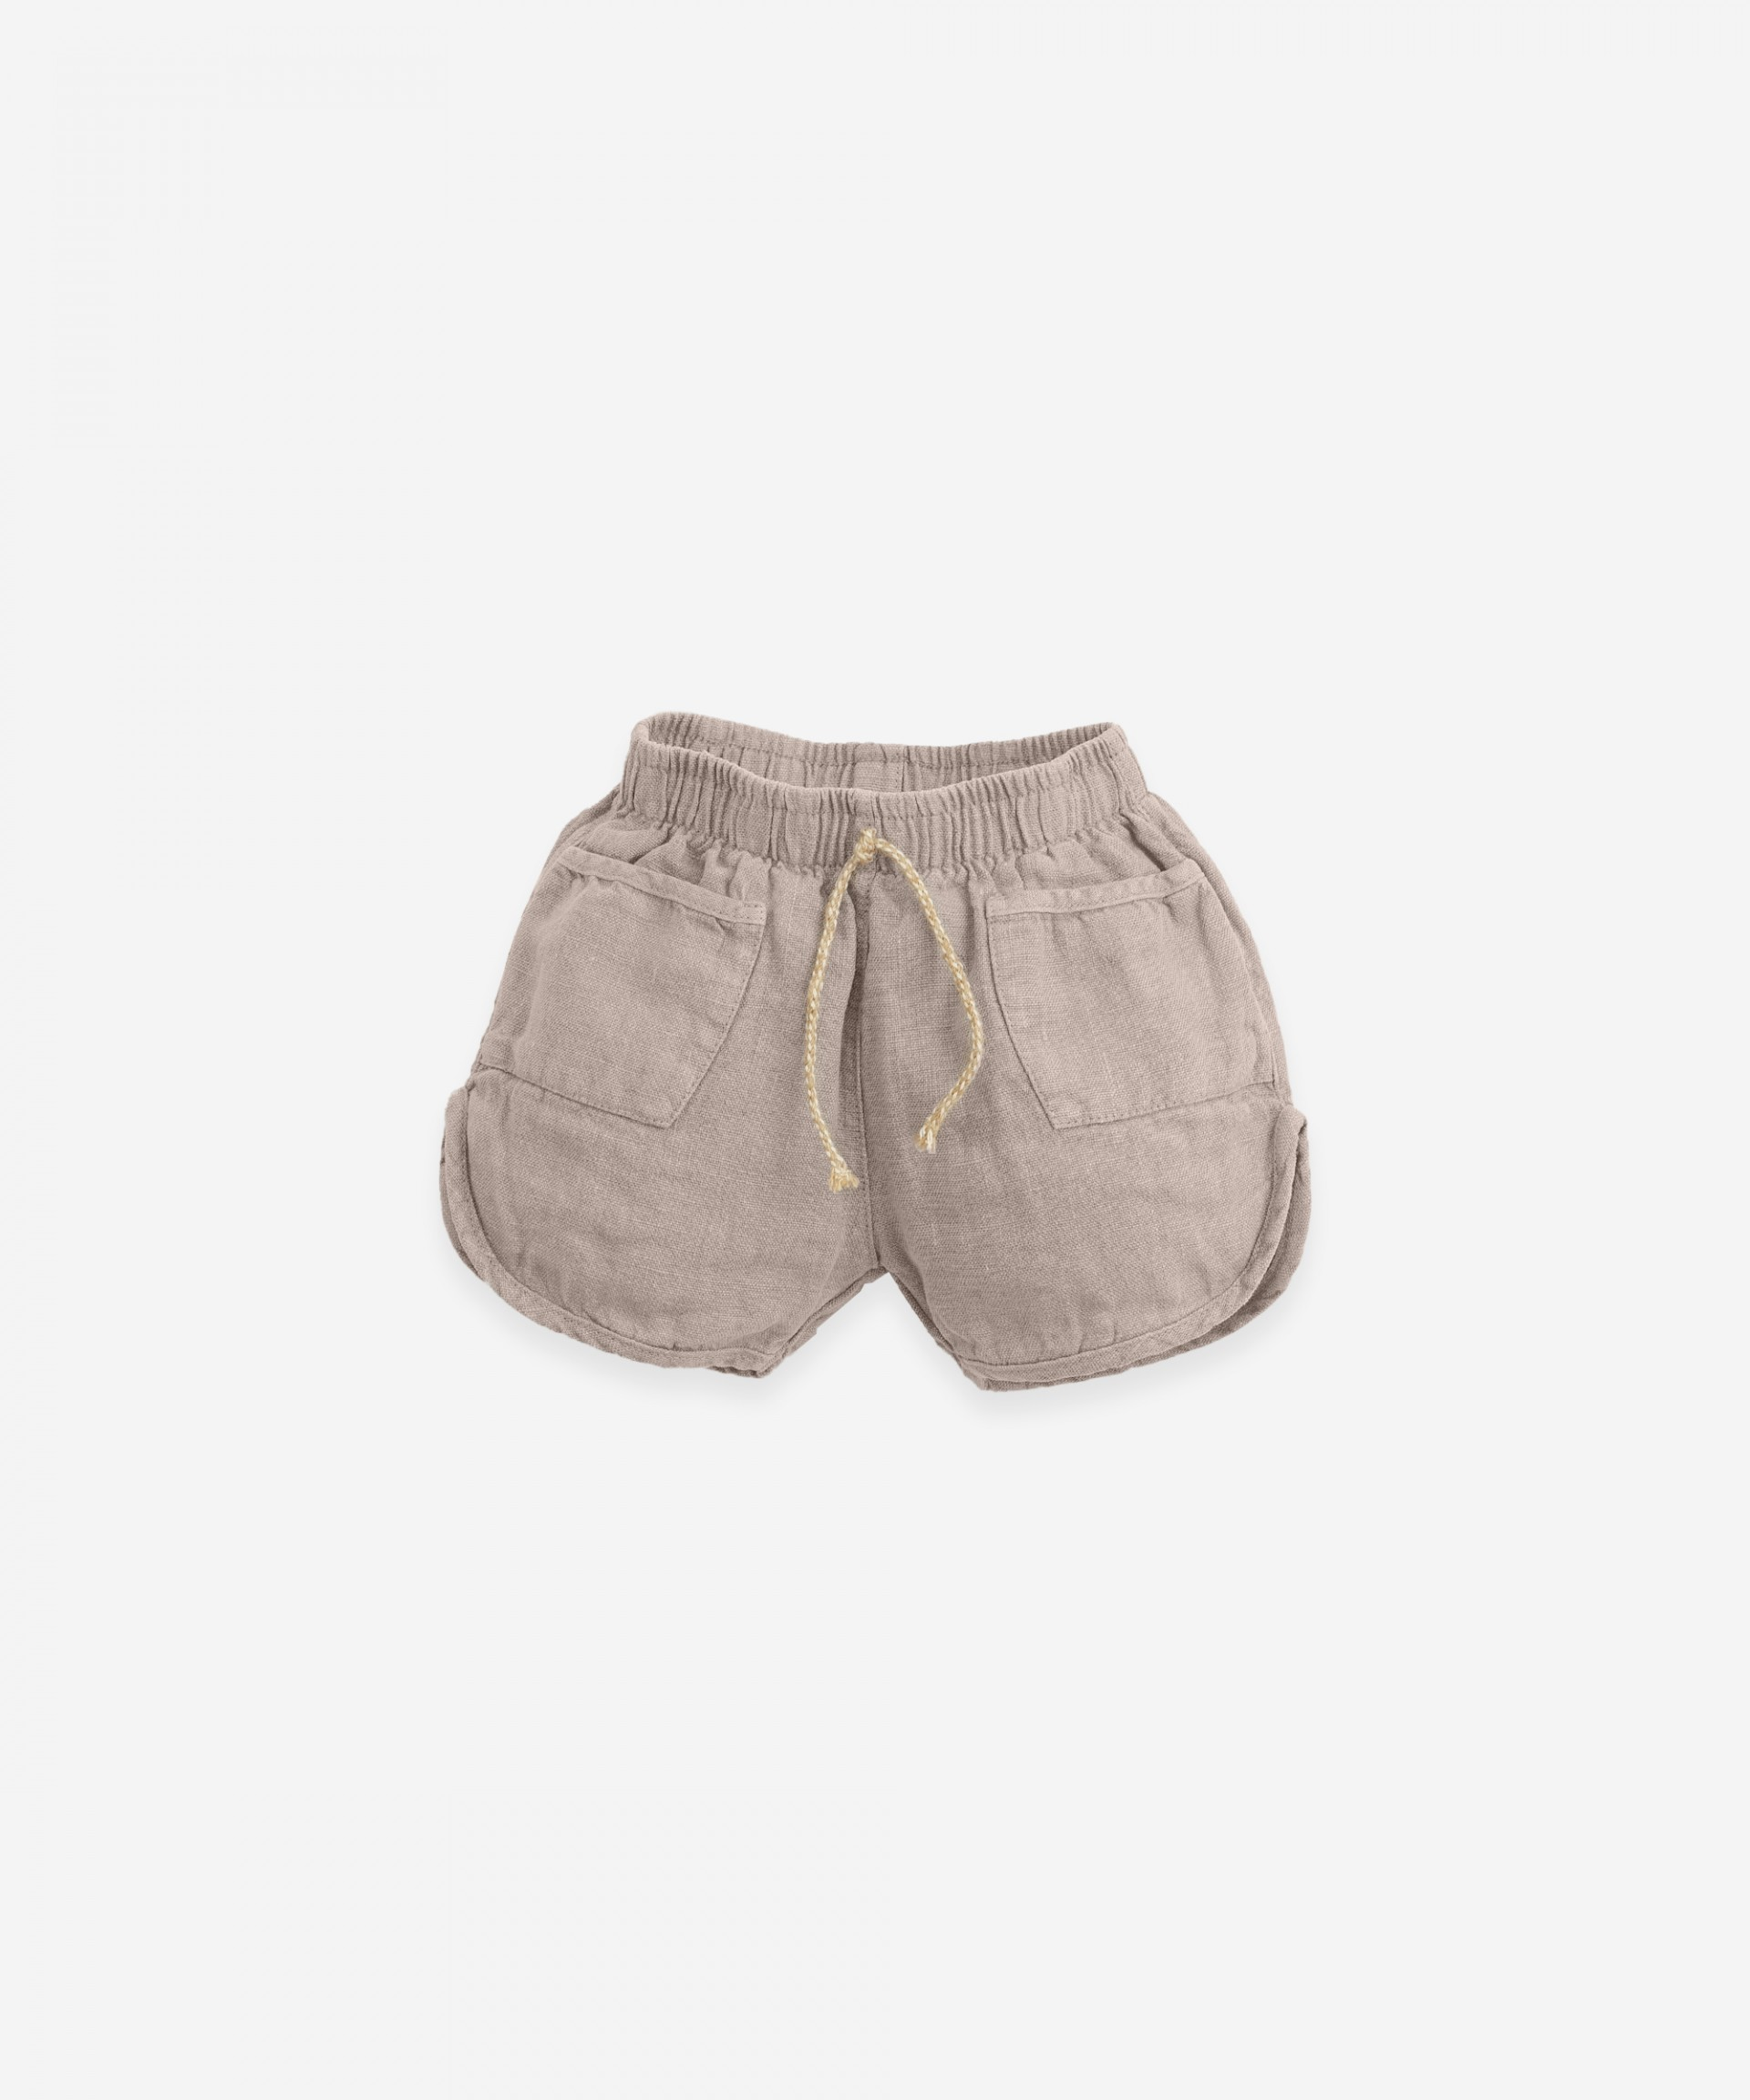 Shorts with jute cord | Botany